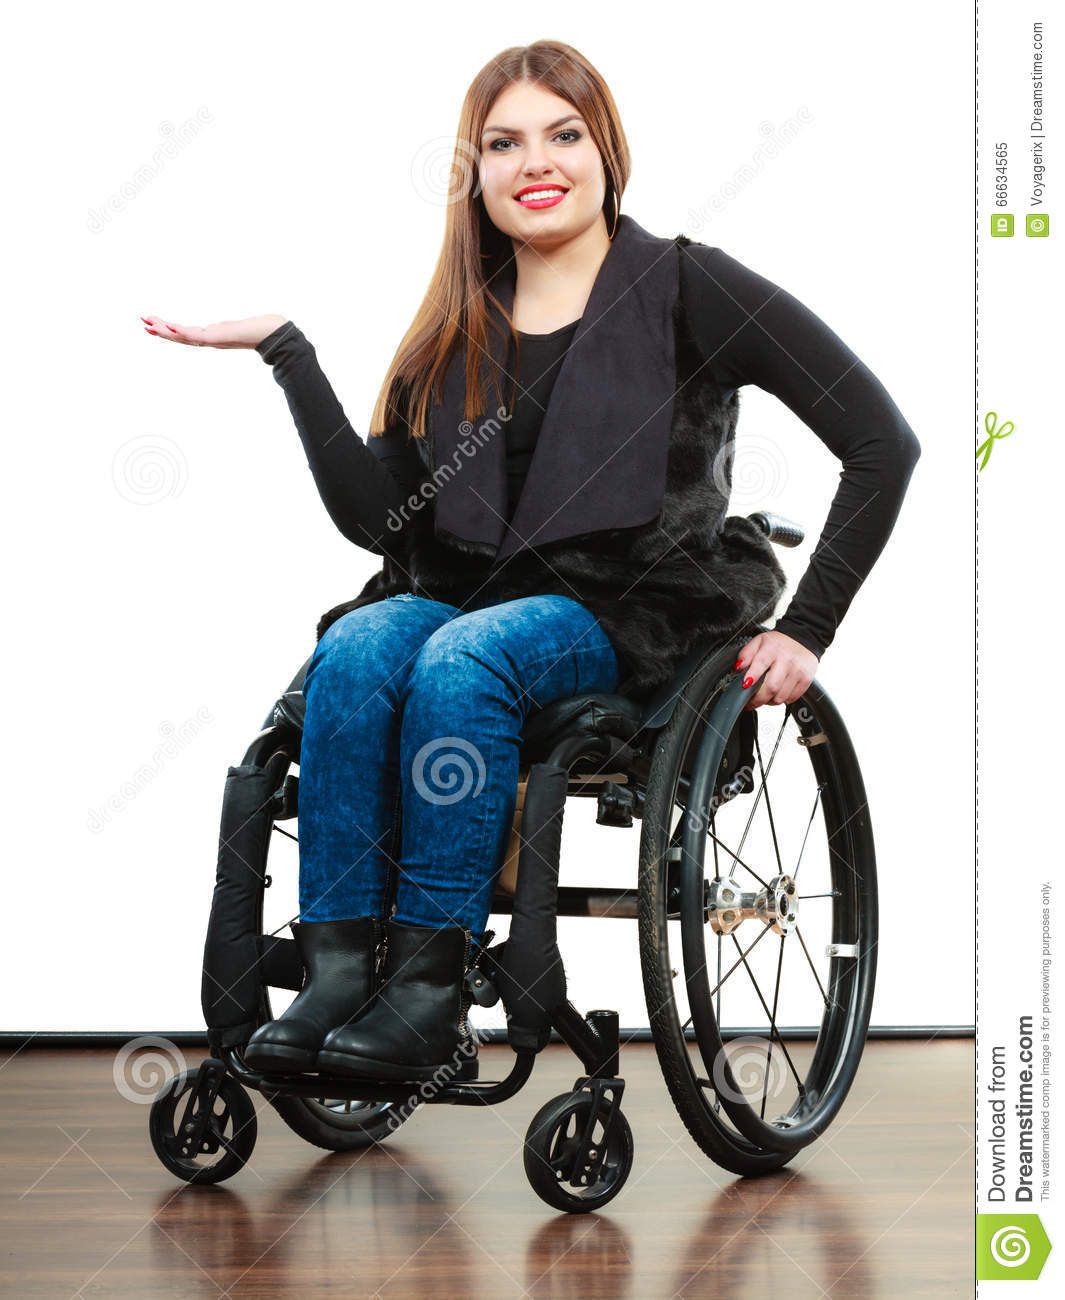 Wheelchair Girl Images Galleries With